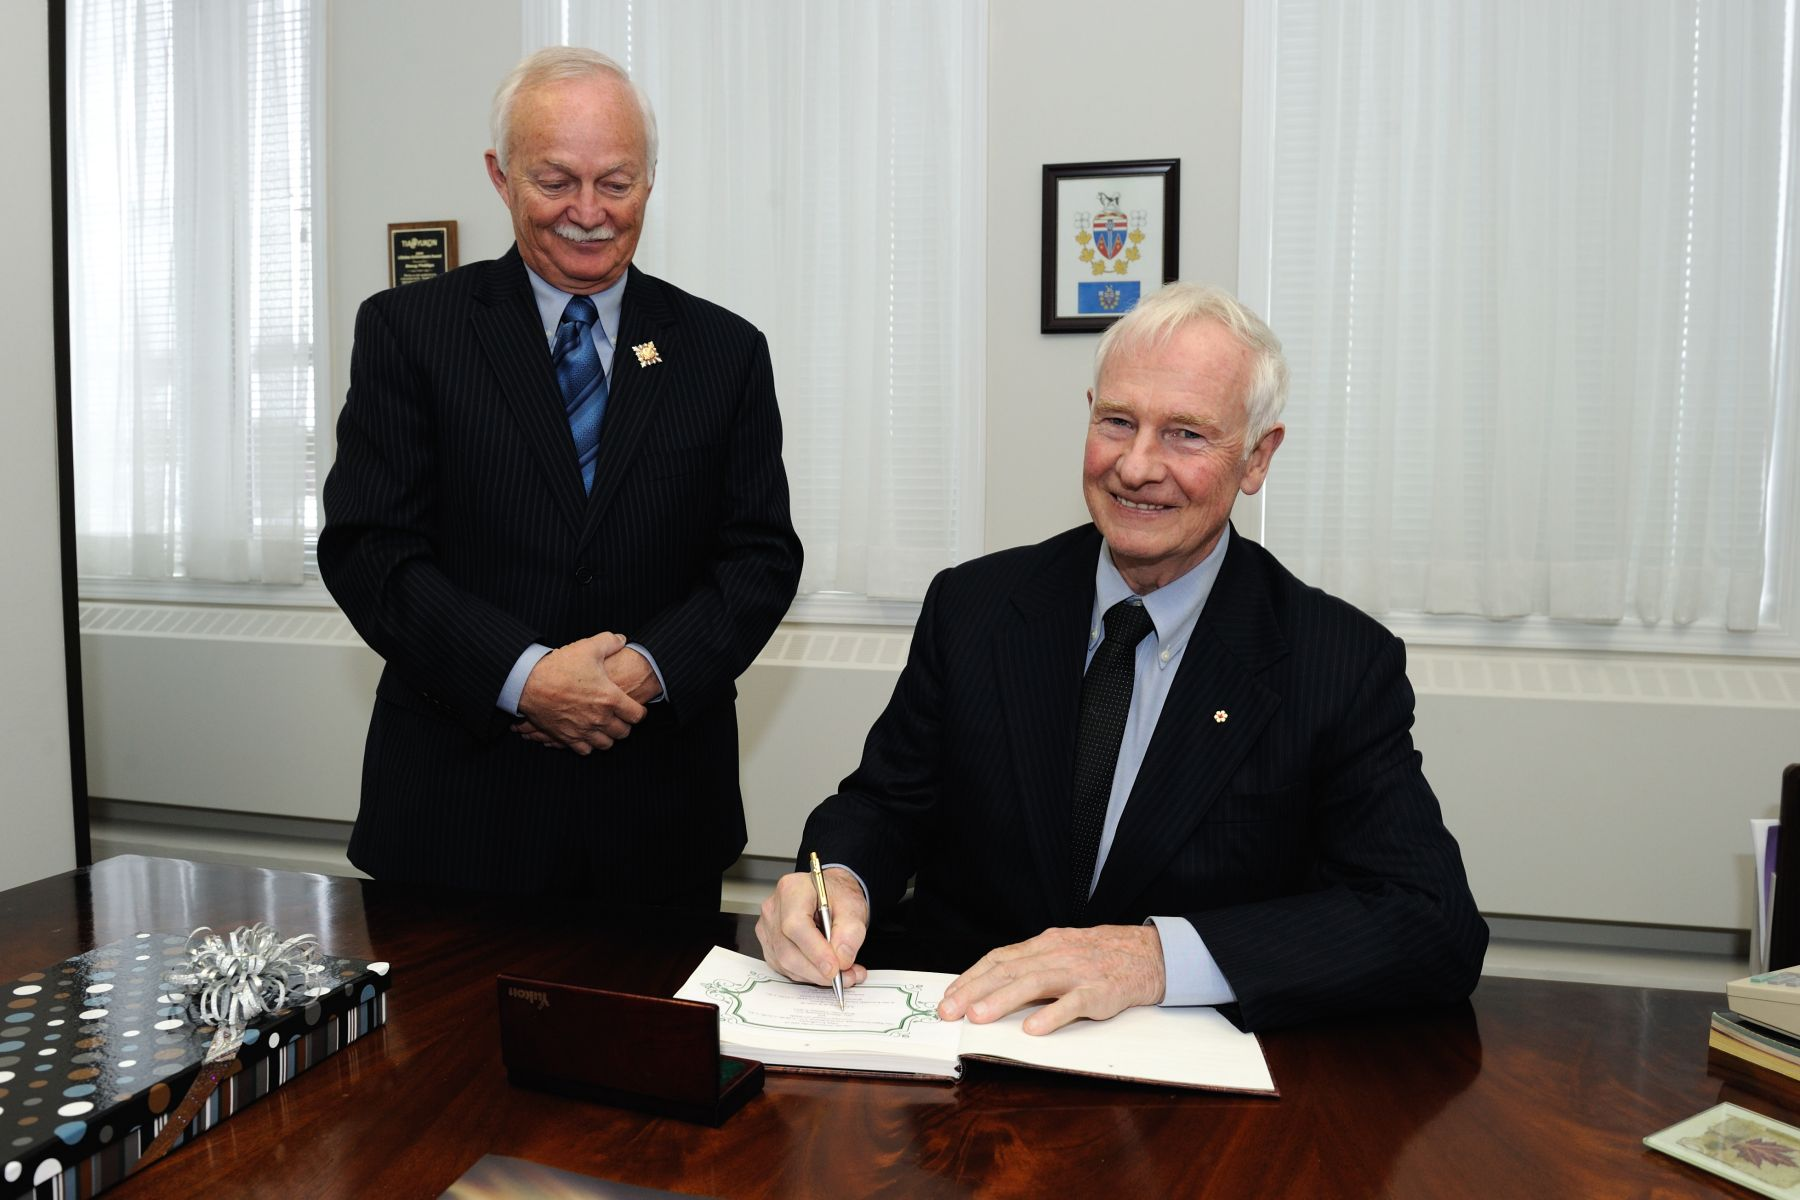 Upon his arrival in Whitehorse, His Excellency the Right Honourable David Johnston, Governor General of Canada, met with the Honourable Douglas George Phillips, Commissioner of Yukon.